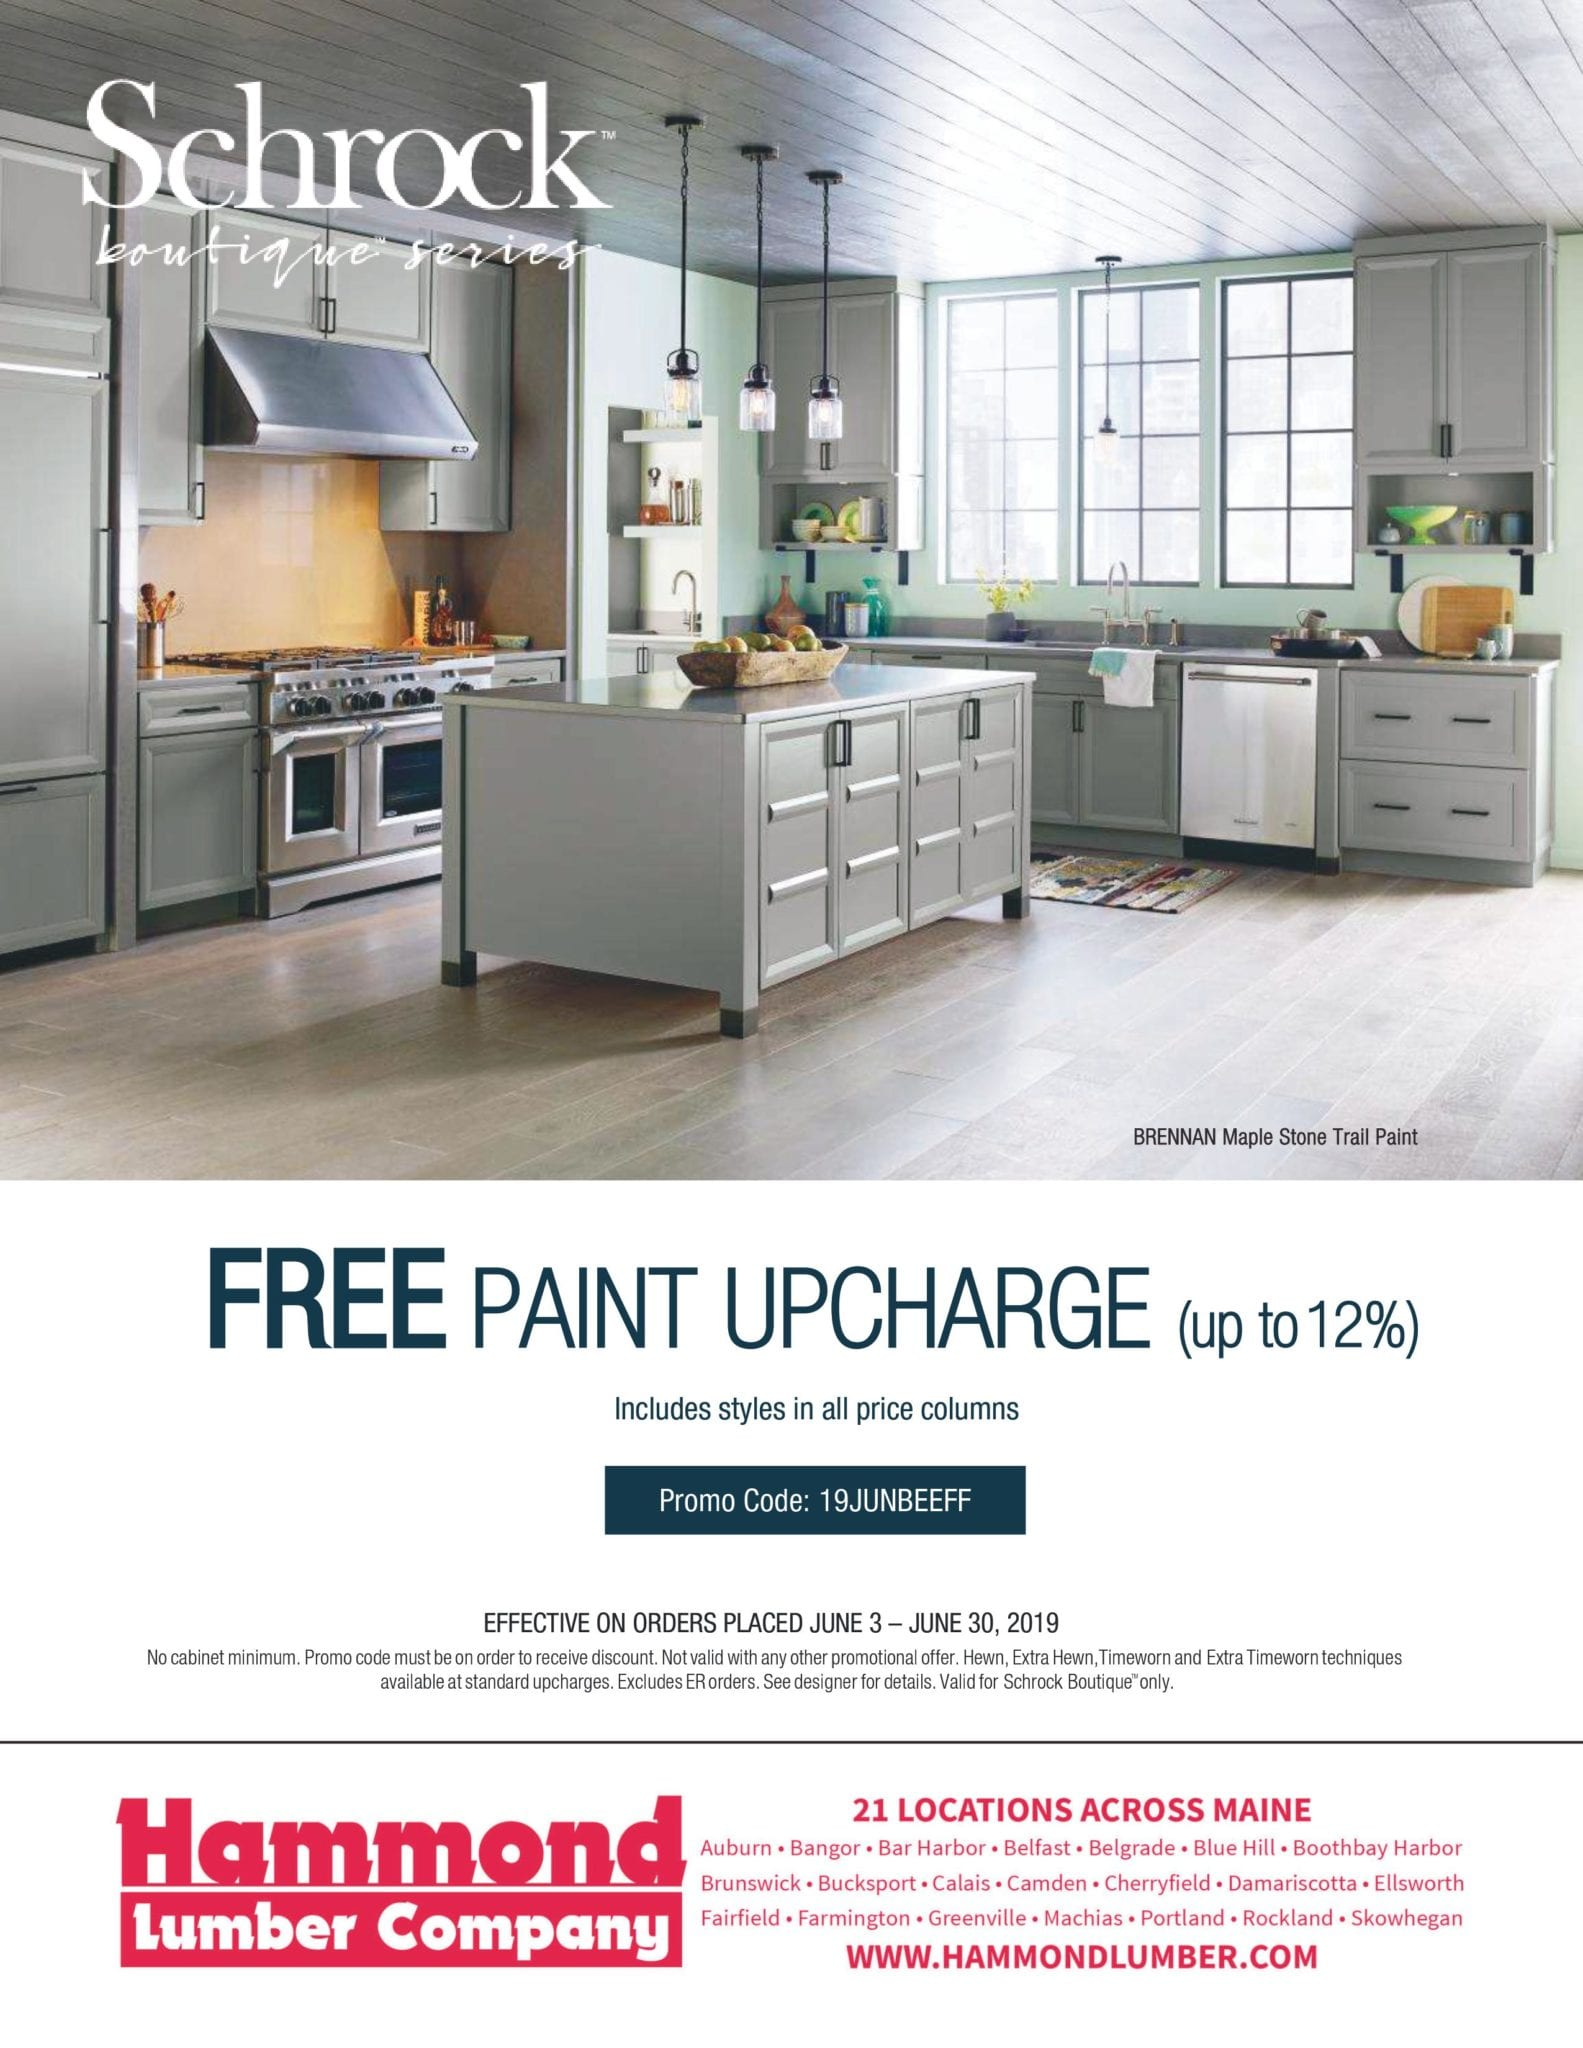 Shcrock Boutique Series Free Paint Upcharge Offer